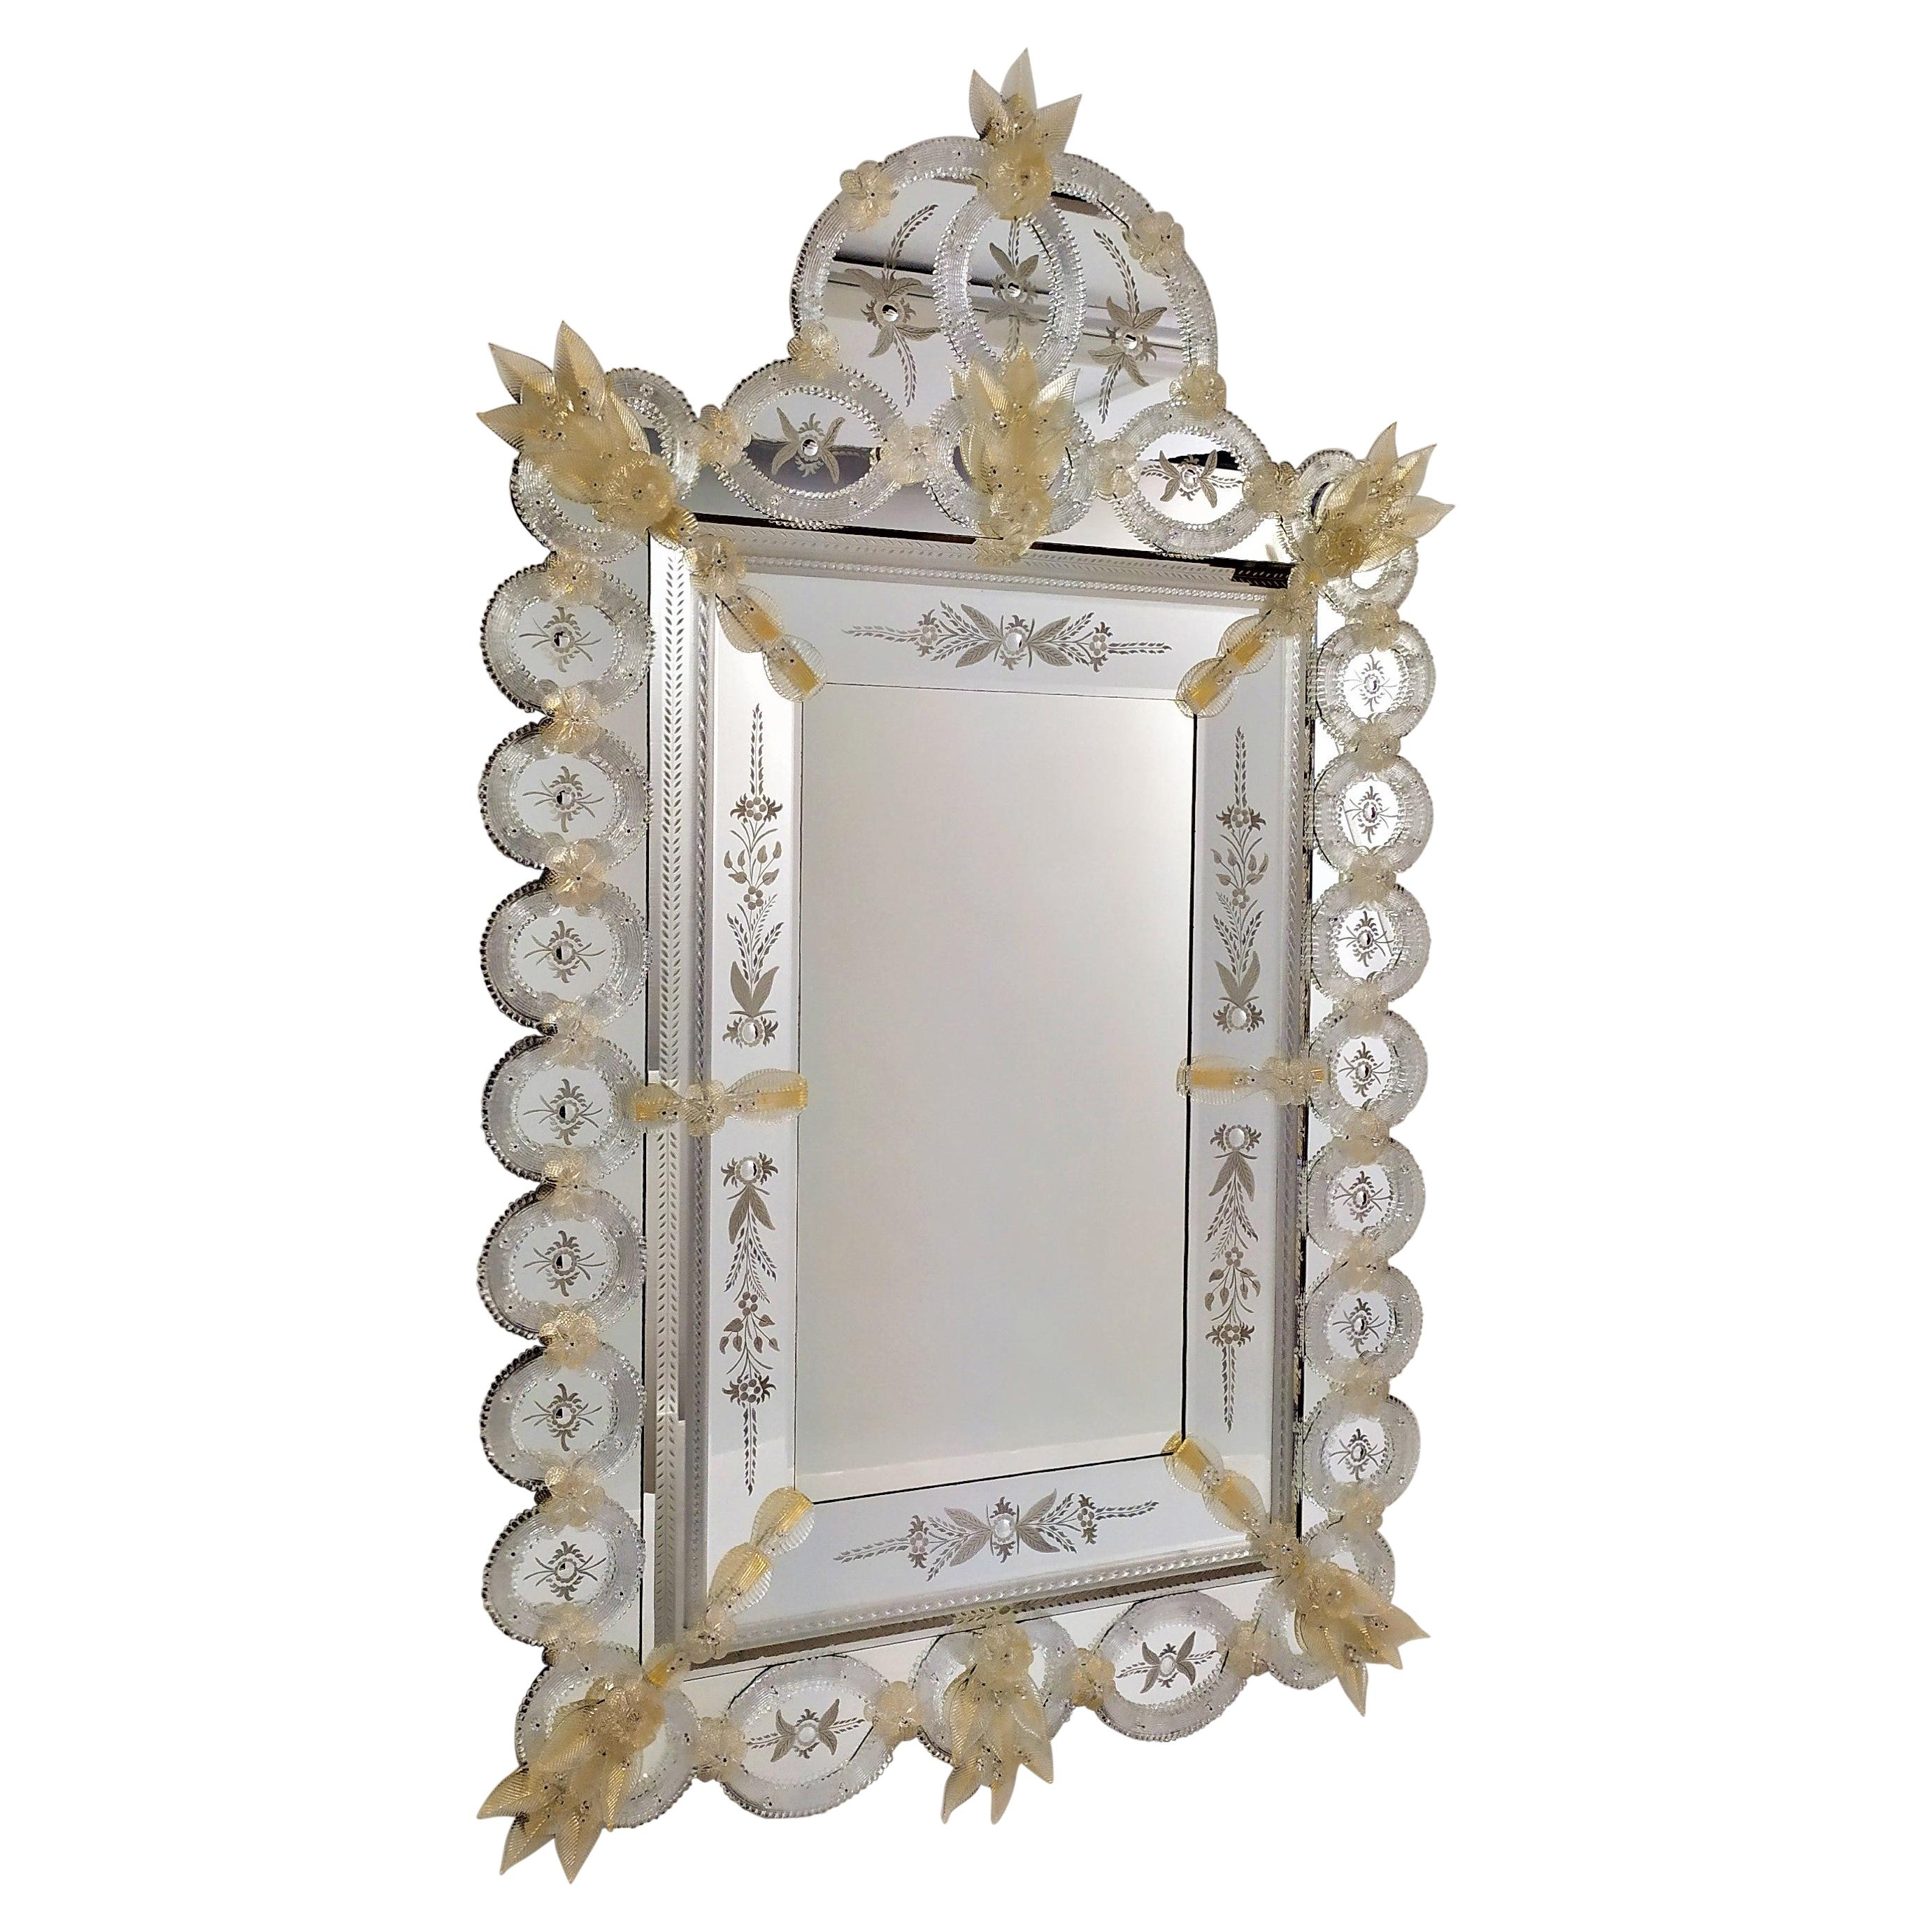 Tondi, Artistic Murano Glas Mirror, Handcrafted, Made in Italy, by Fratelli Tosi